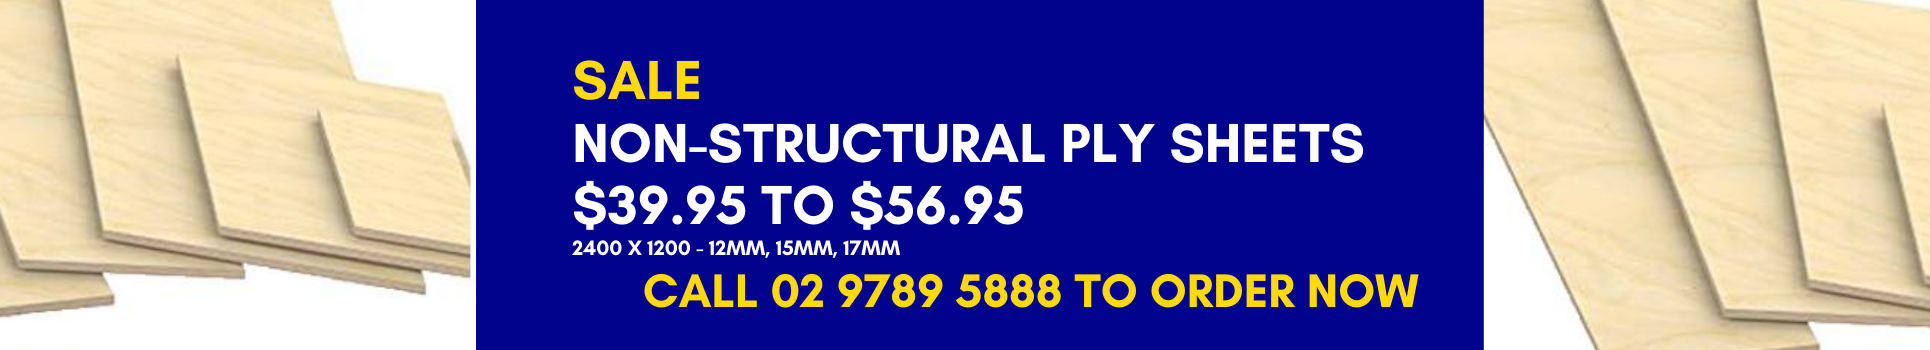 non-structural ply